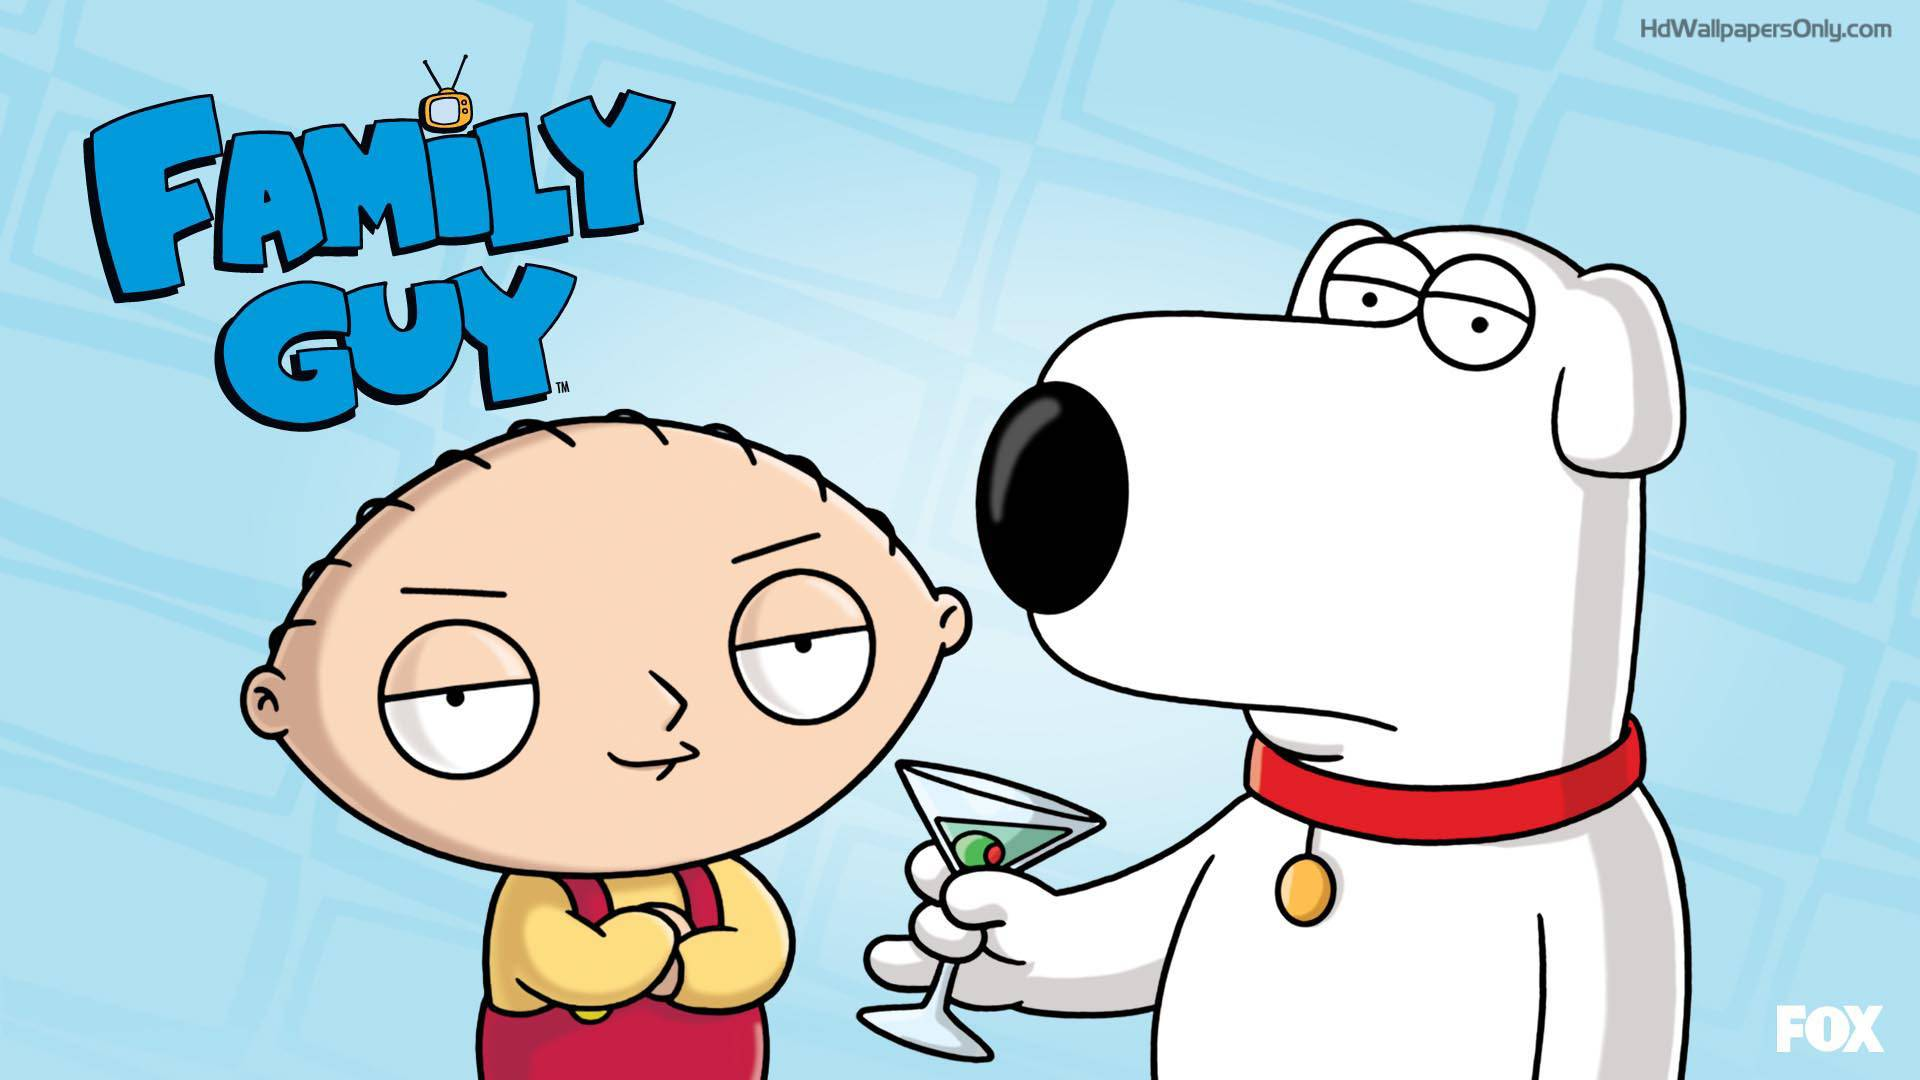 Family-Guy-Wallpapers-002